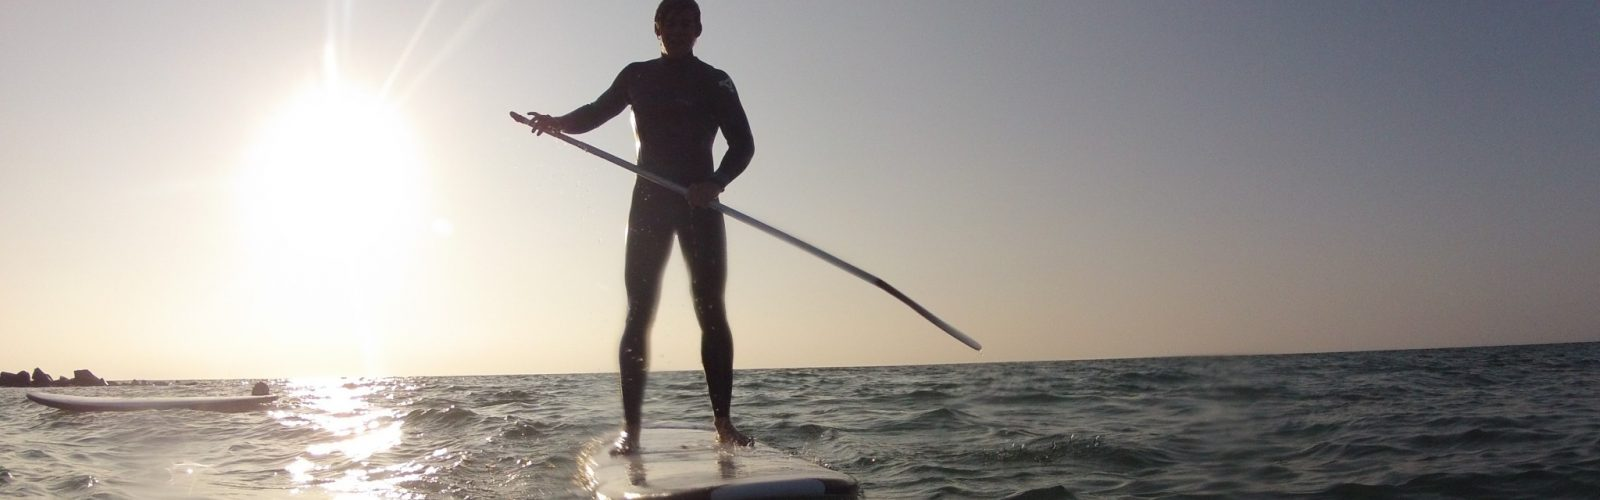 SUP Ostsee Tour